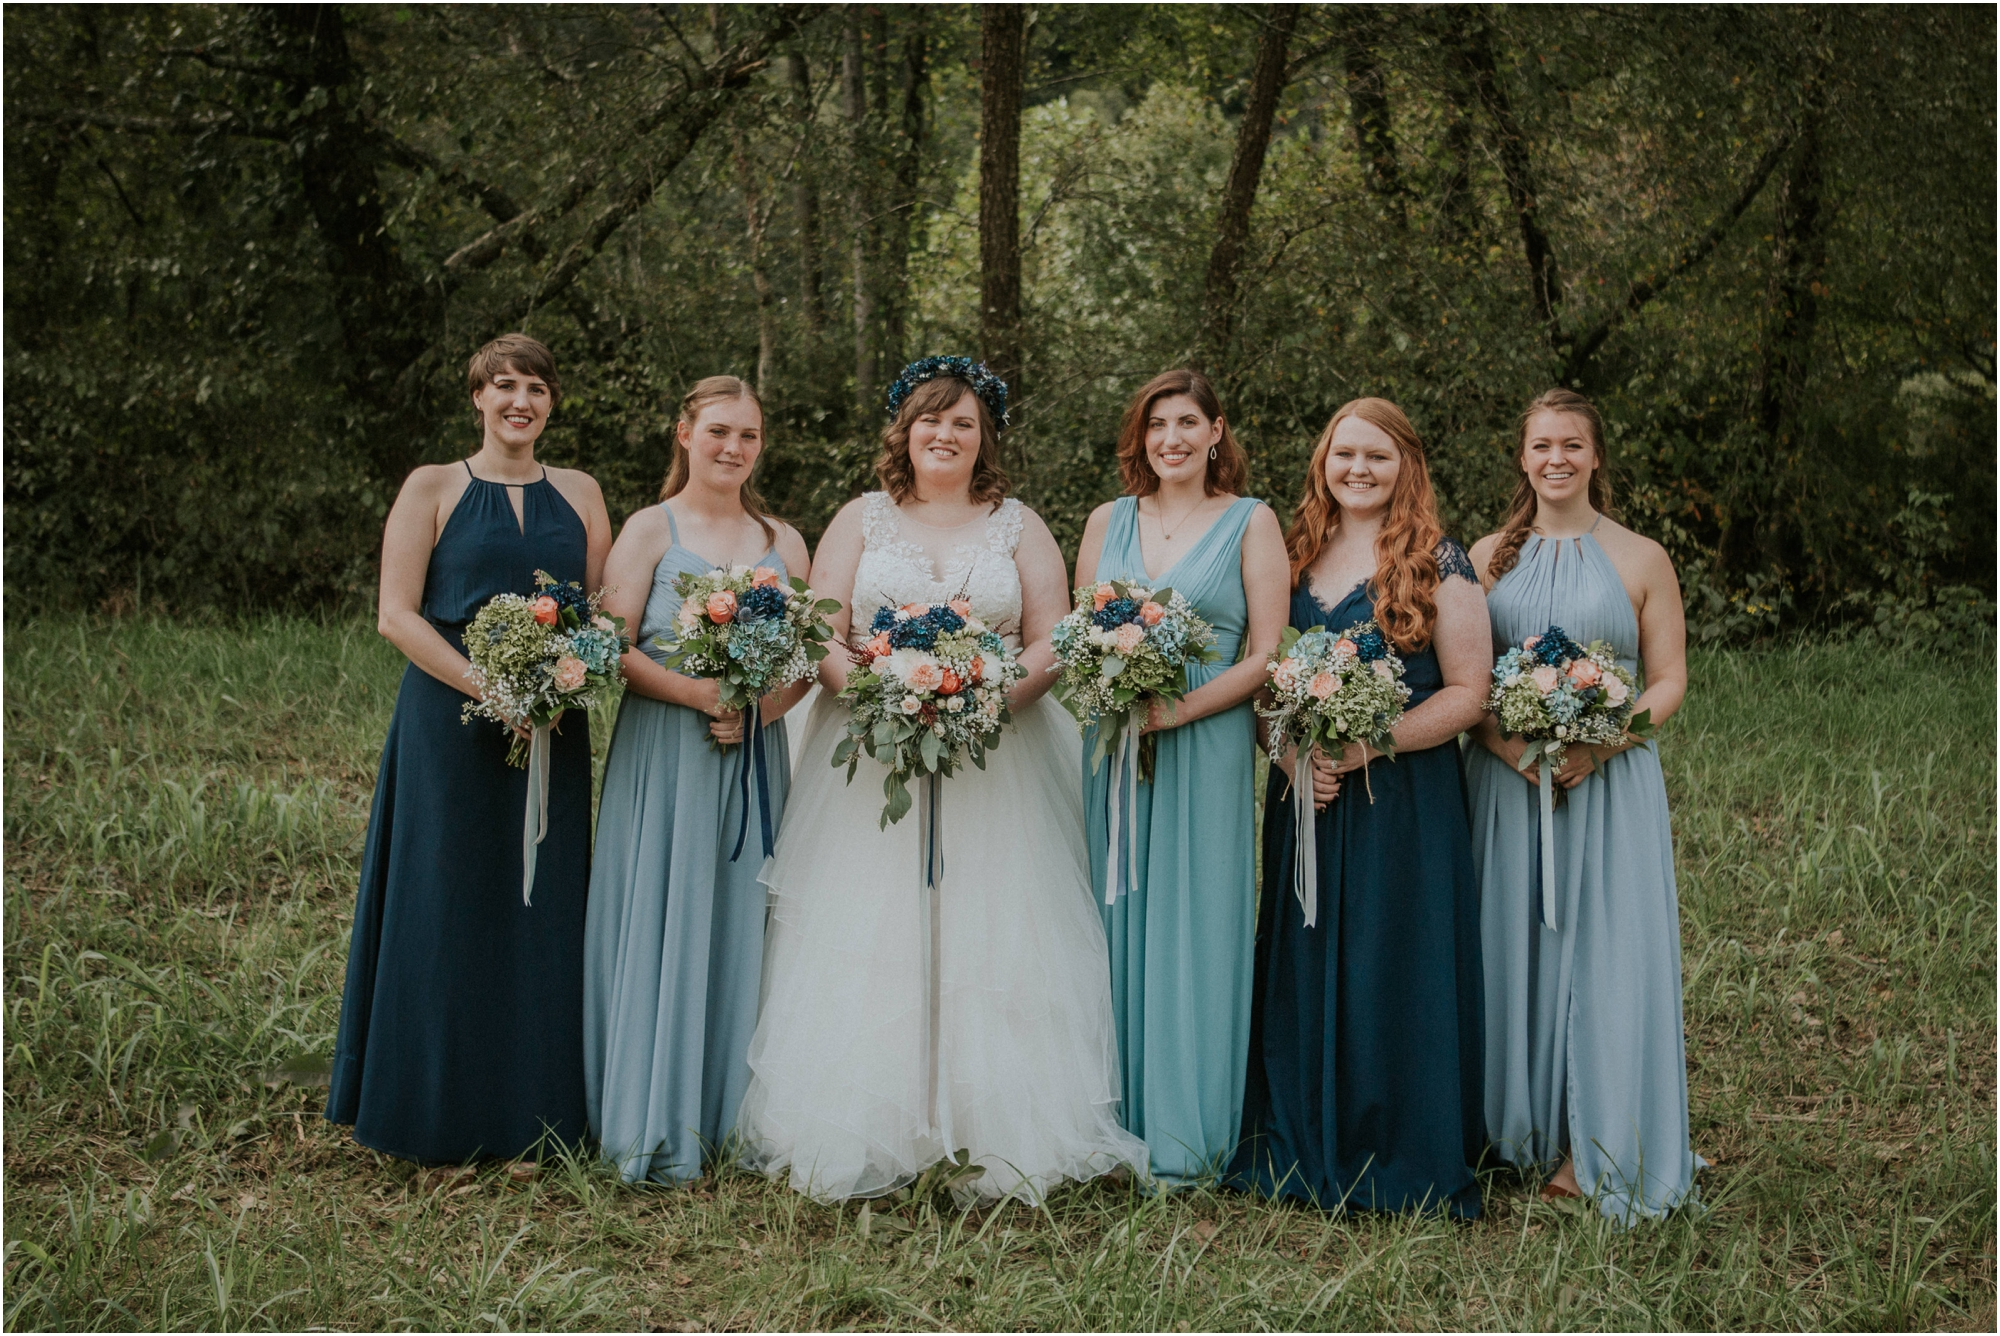 caryville-robbins-middle-tennessee-intimate-cozy-fall-navy-rustic-backyard-wedding_0053.jpg